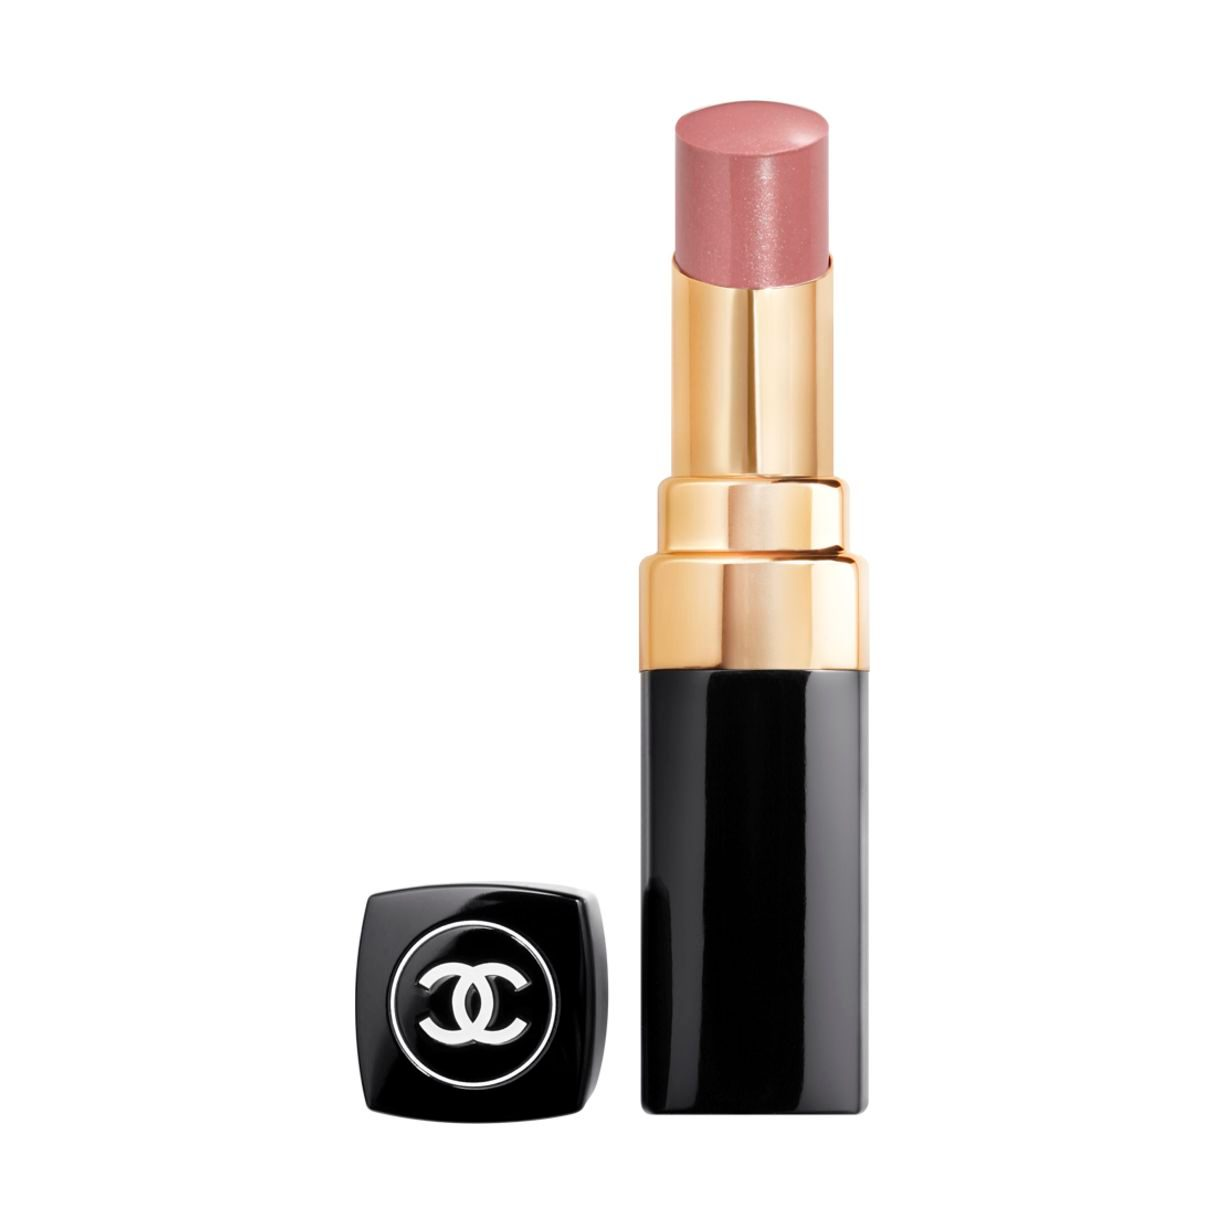 ROUGE COCO SHINE HYDRATING SHEER LIPSHINE / HYDRATING COLOUR LIPSHINE